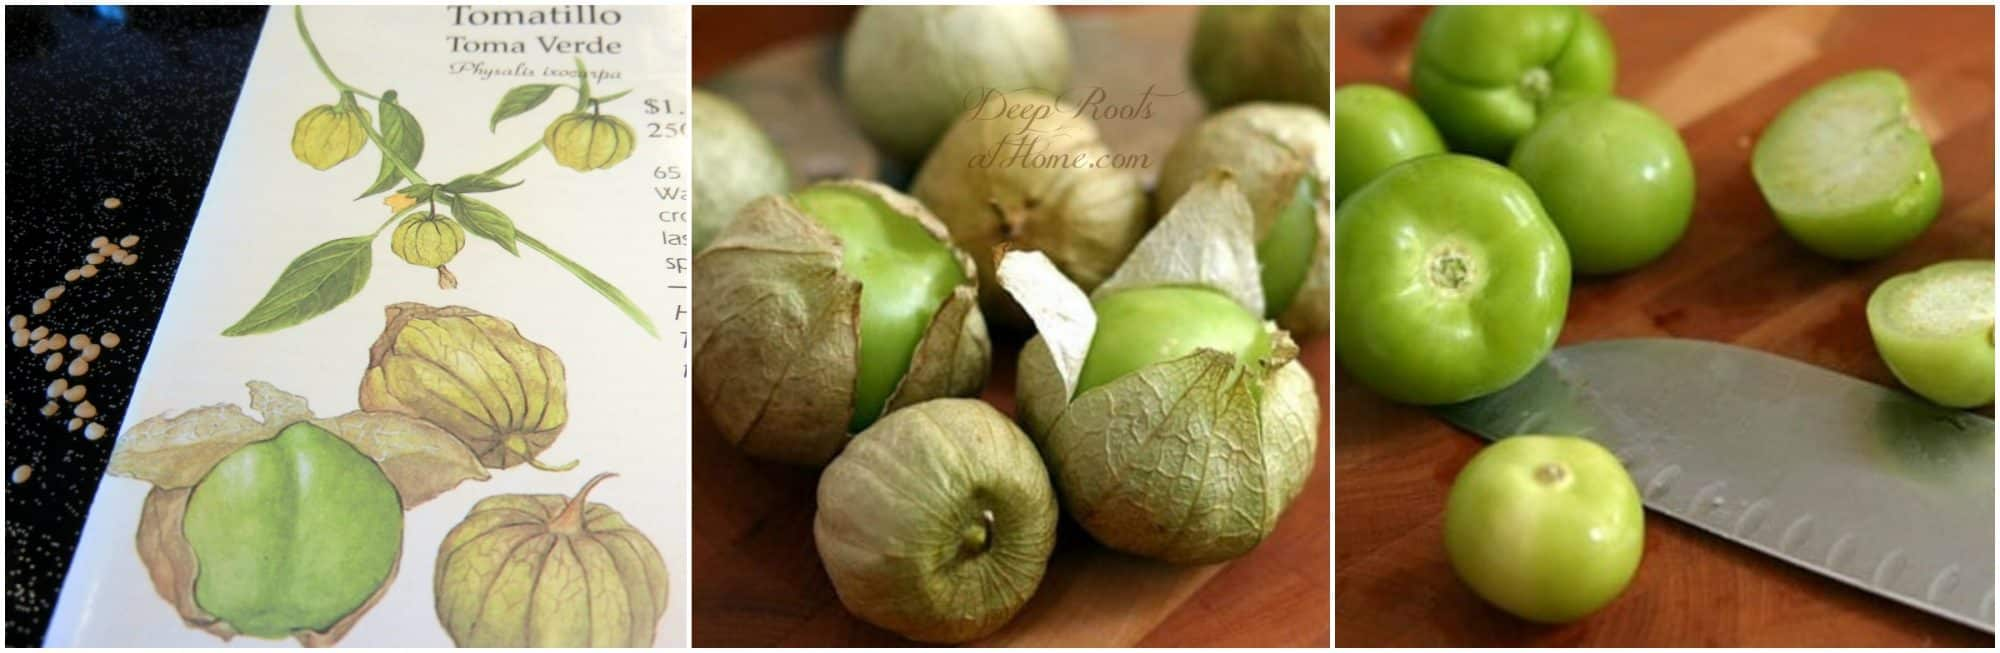 Fire or Oven Roasted Tomatillos Perfect this Salsa Verde Recipe. small green fruit in husks off the plant